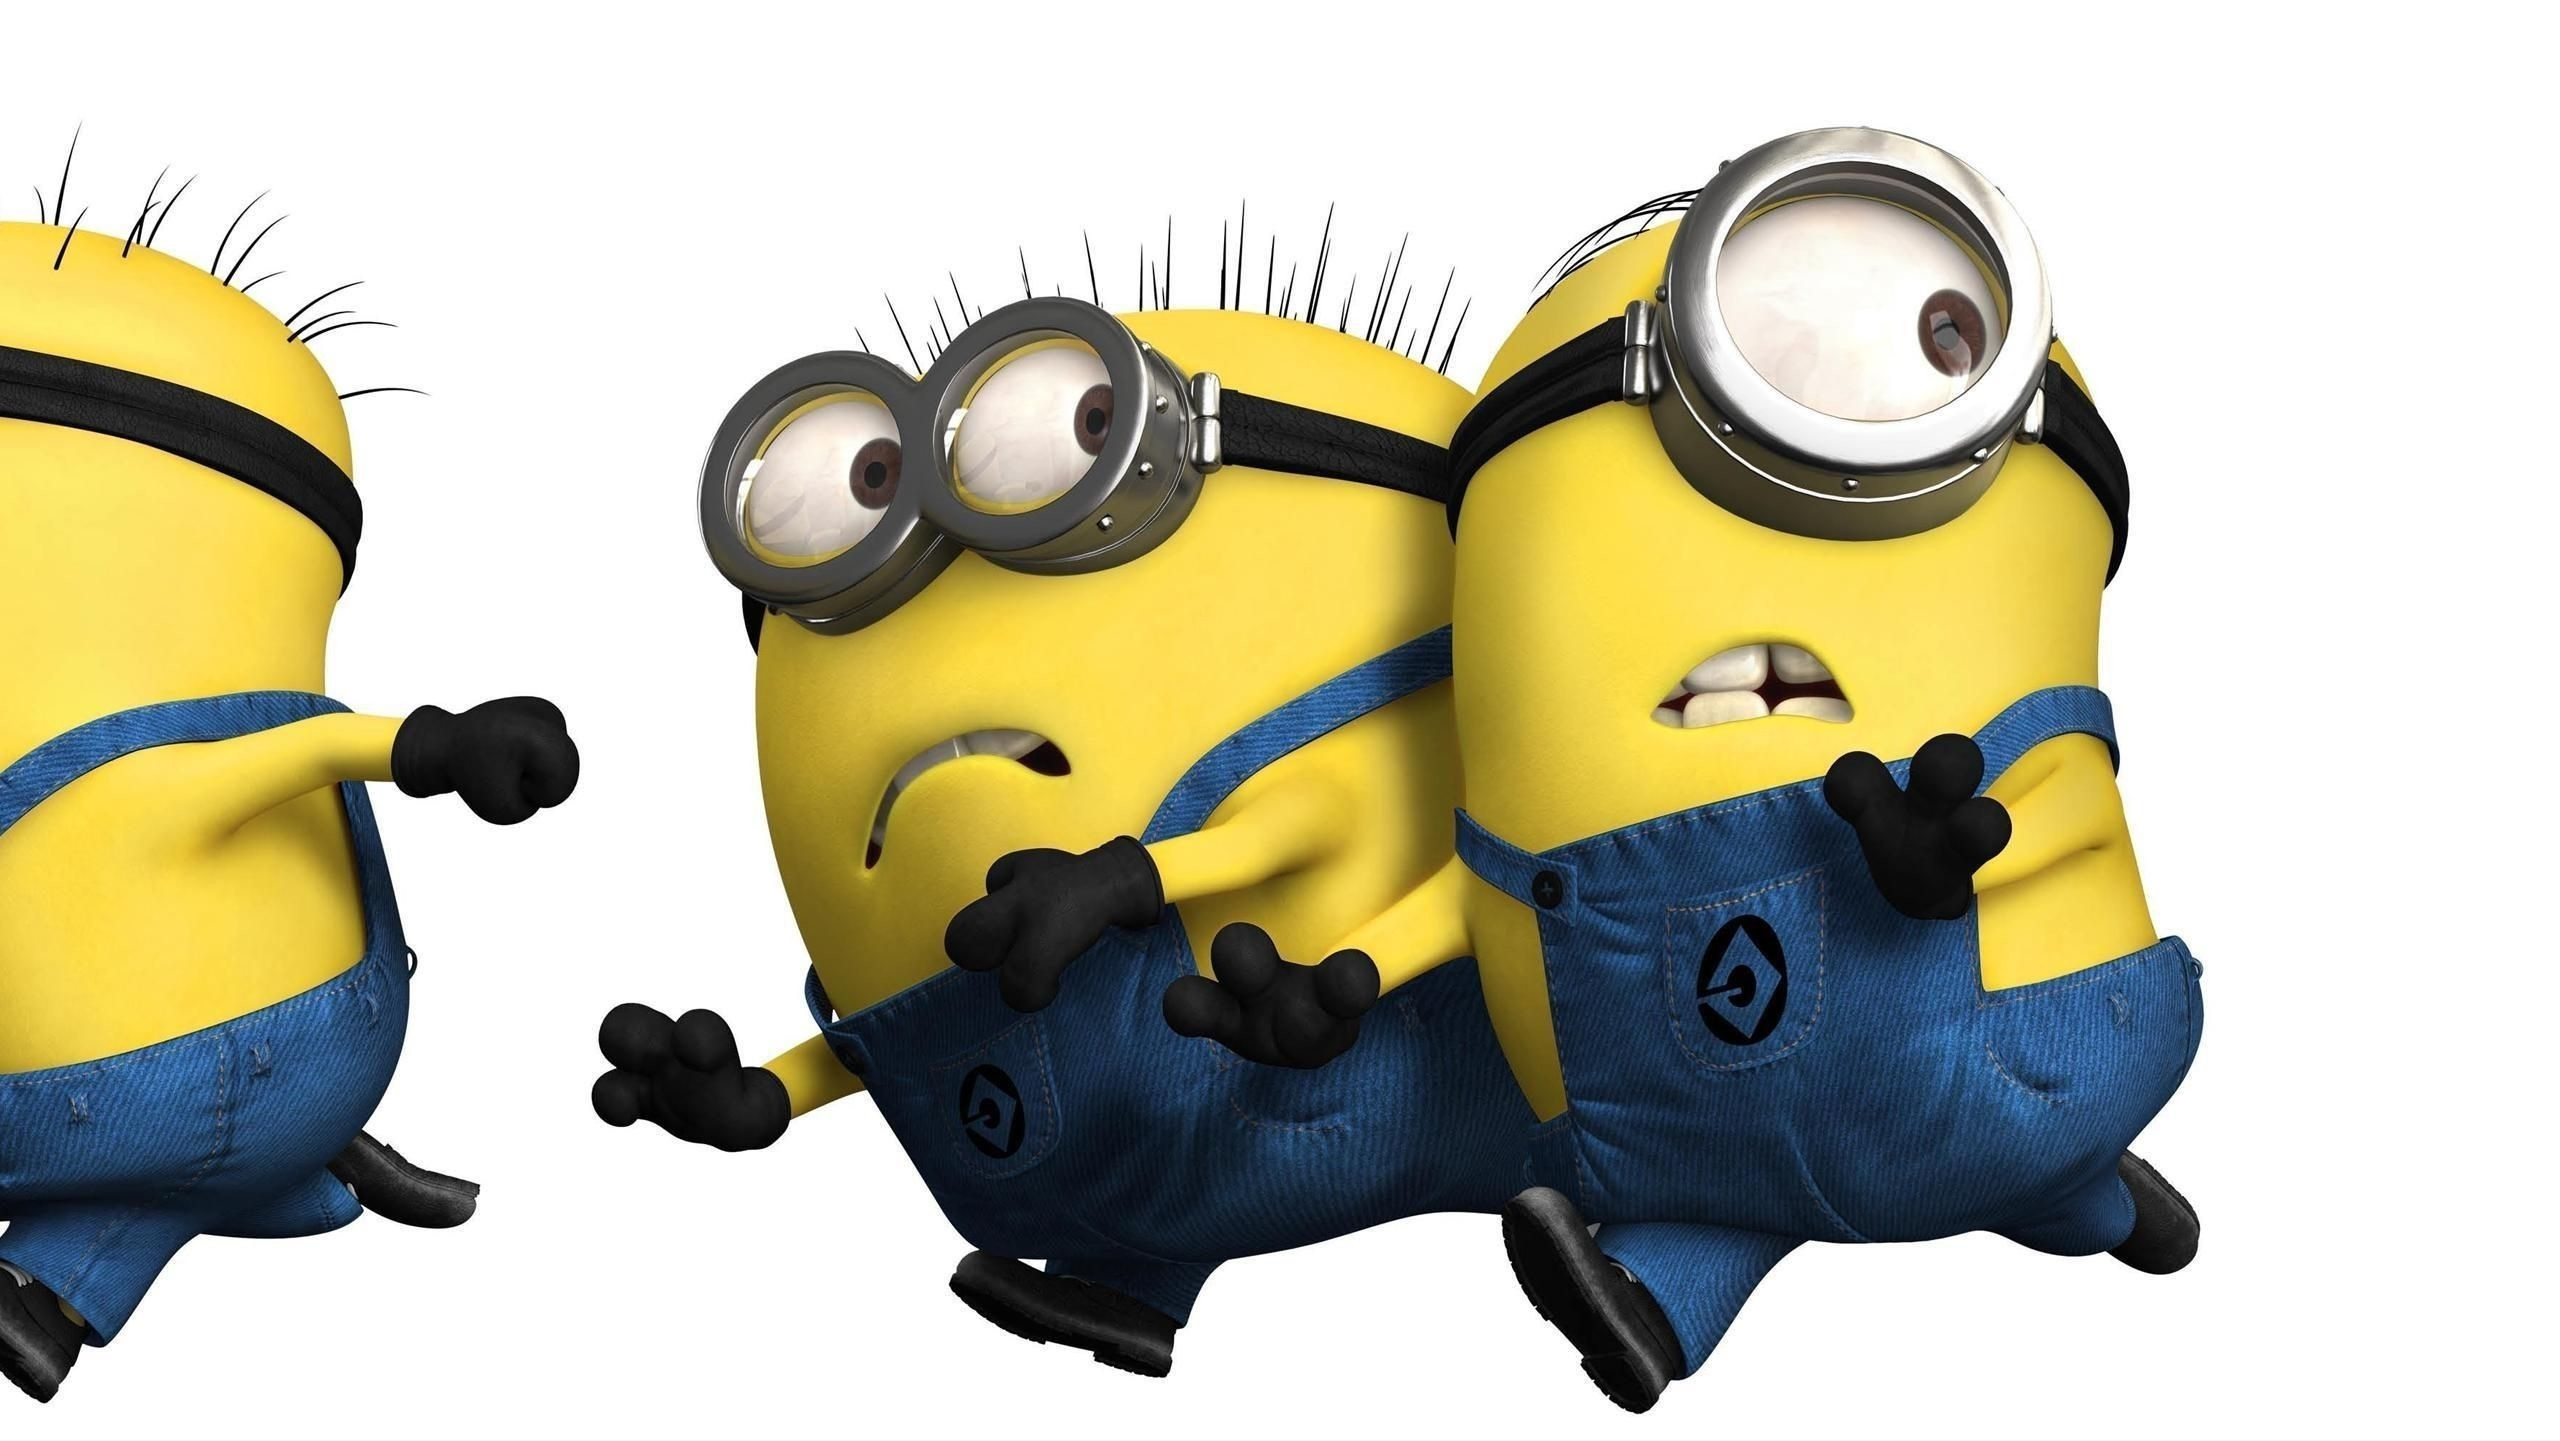 funny minion wallpapers hd free download | pixelstalk